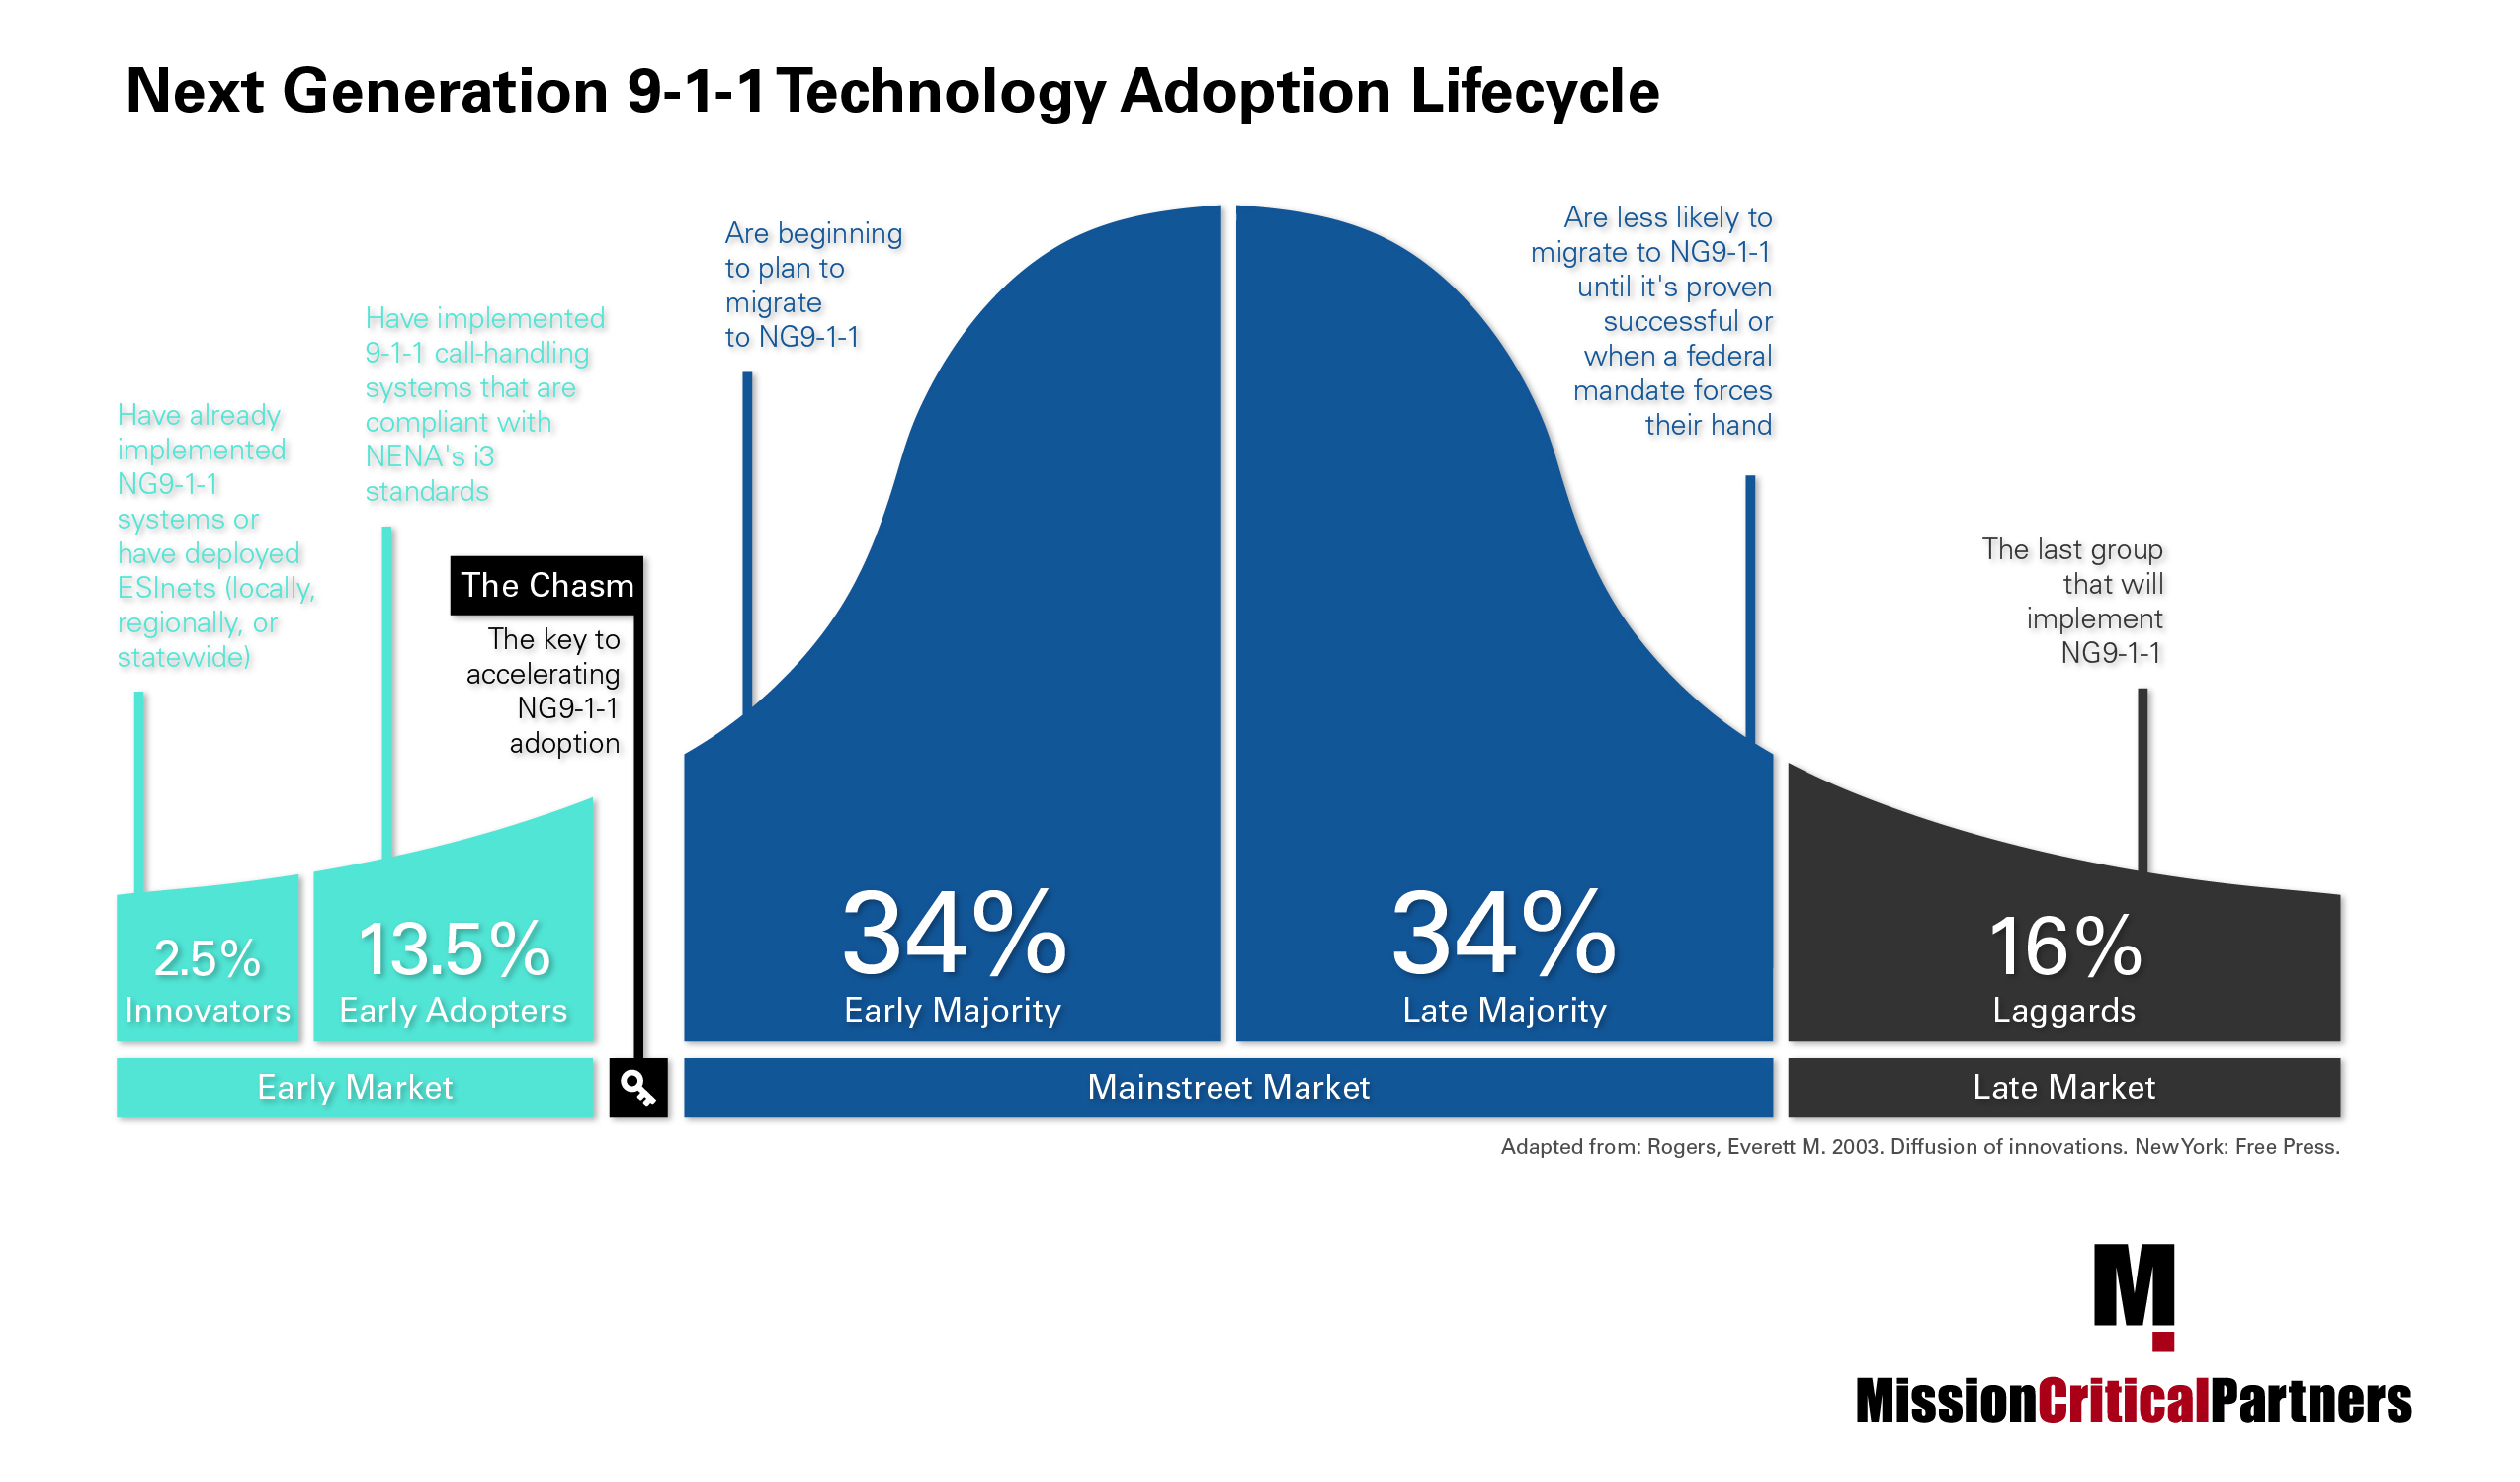 Next Generation 911 Tech Adoption Lifecycle-1